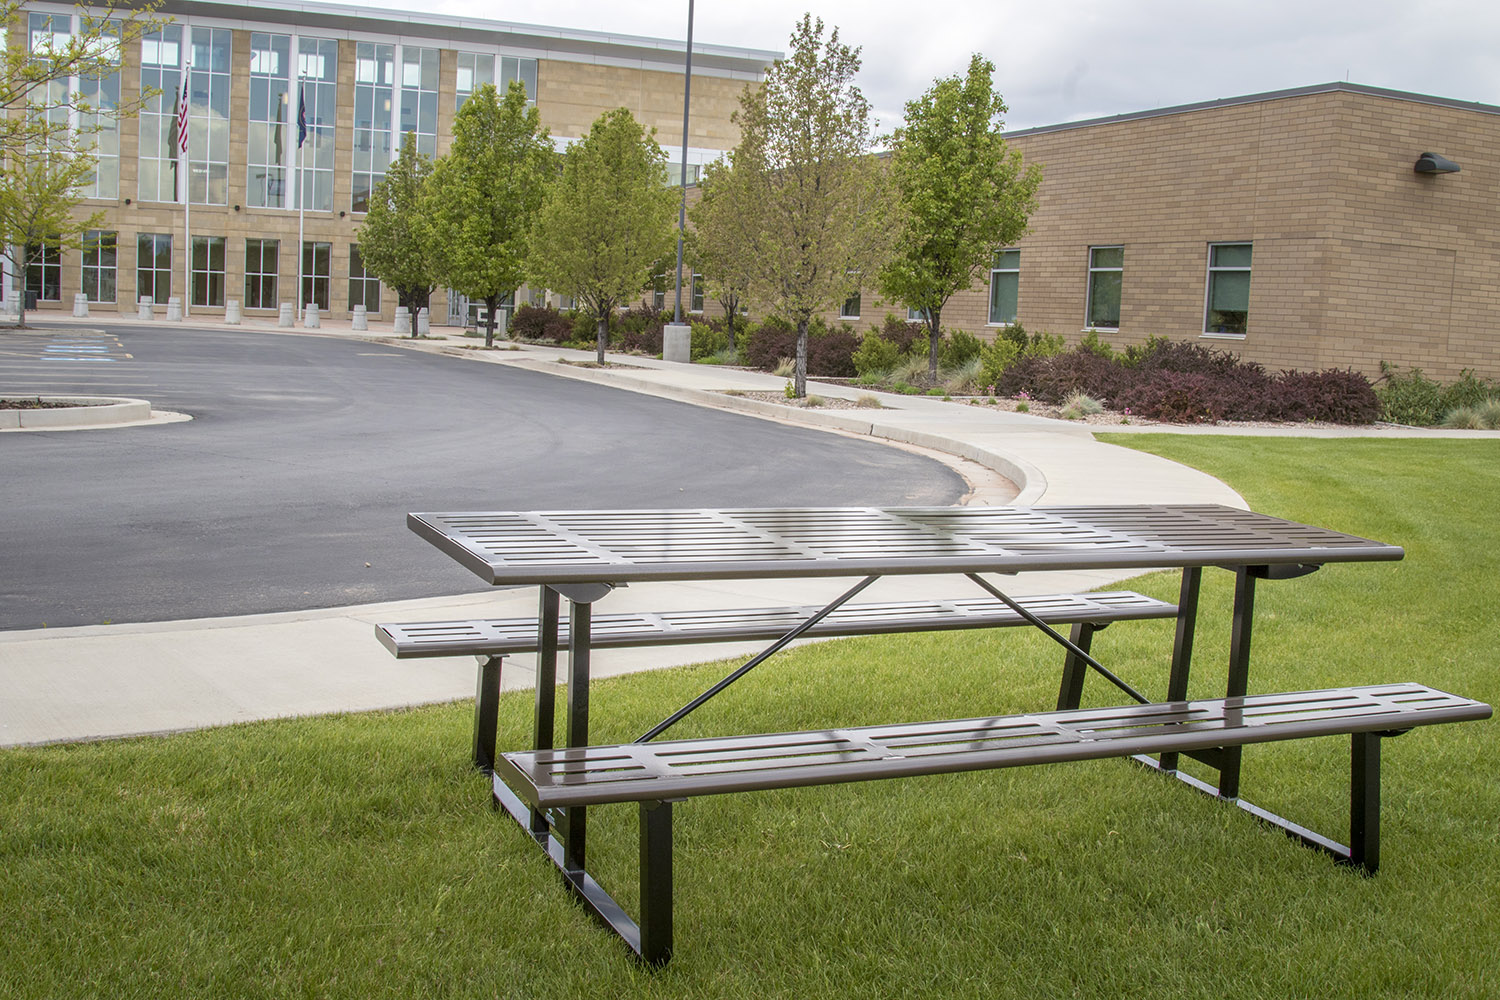 Stainless Steel Metal Picnic Table Utah County Quality Site Furniture - Stainless steel picnic table